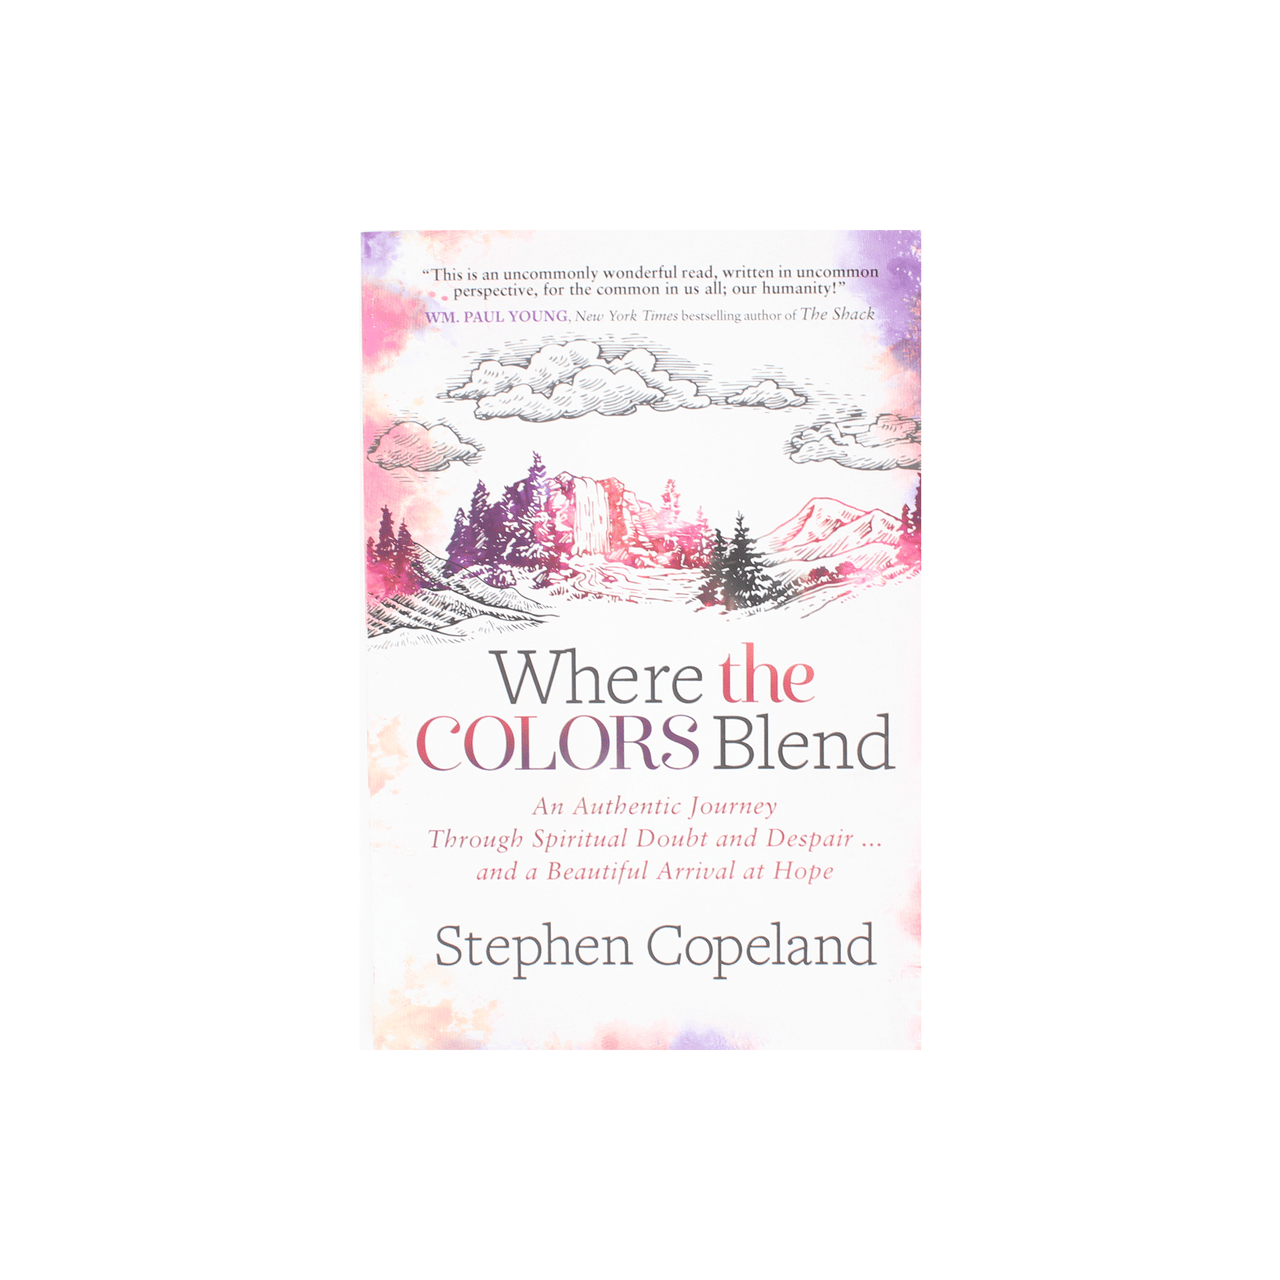 Where the Colors Blend: An Authentic Journey Through Spiritual Doubt and Despair … and a Beautiful Arrival at Hope